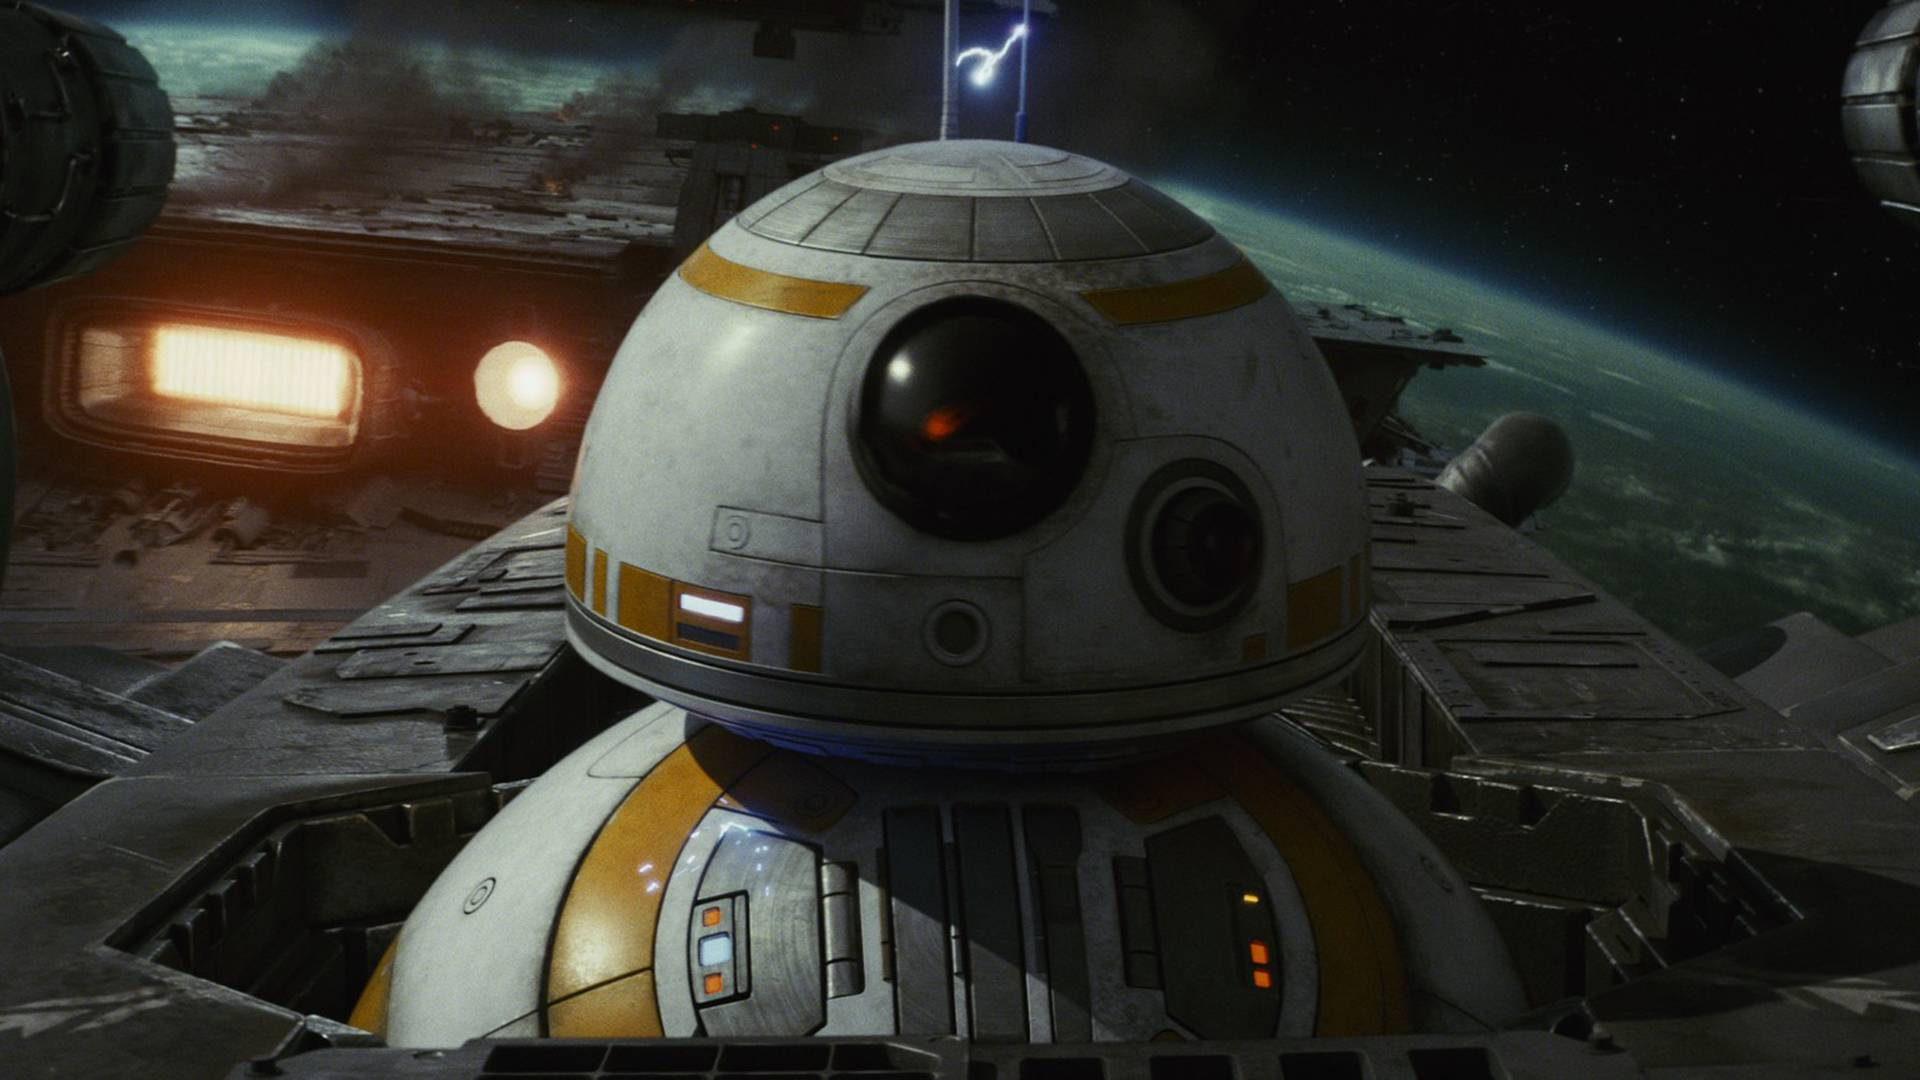 Star Wars Episode 9 New Droid , HD Wallpaper & Backgrounds